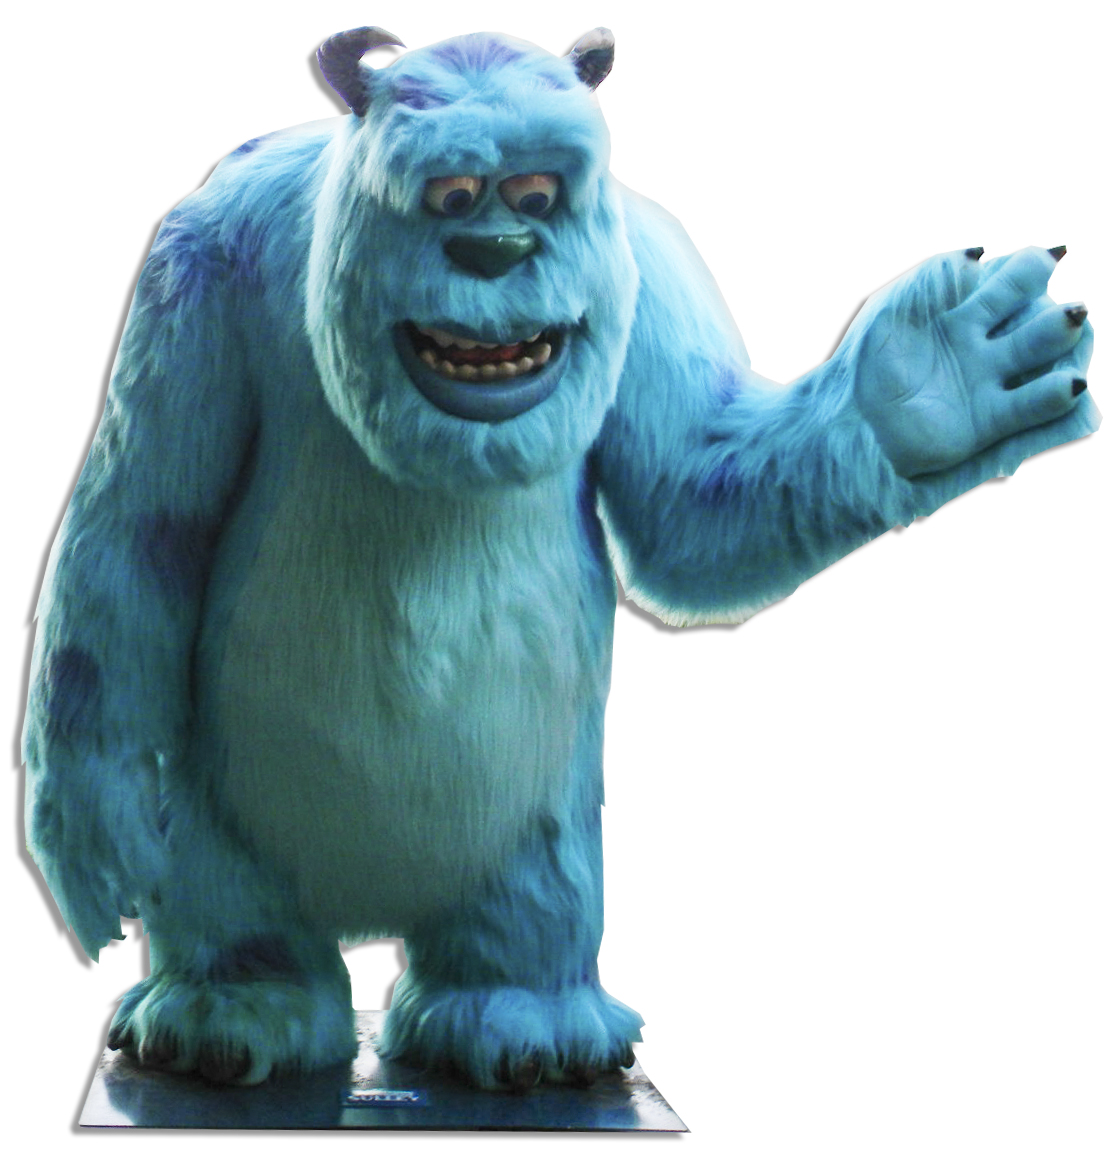 lot detail rare giant life size disney pixar character sully